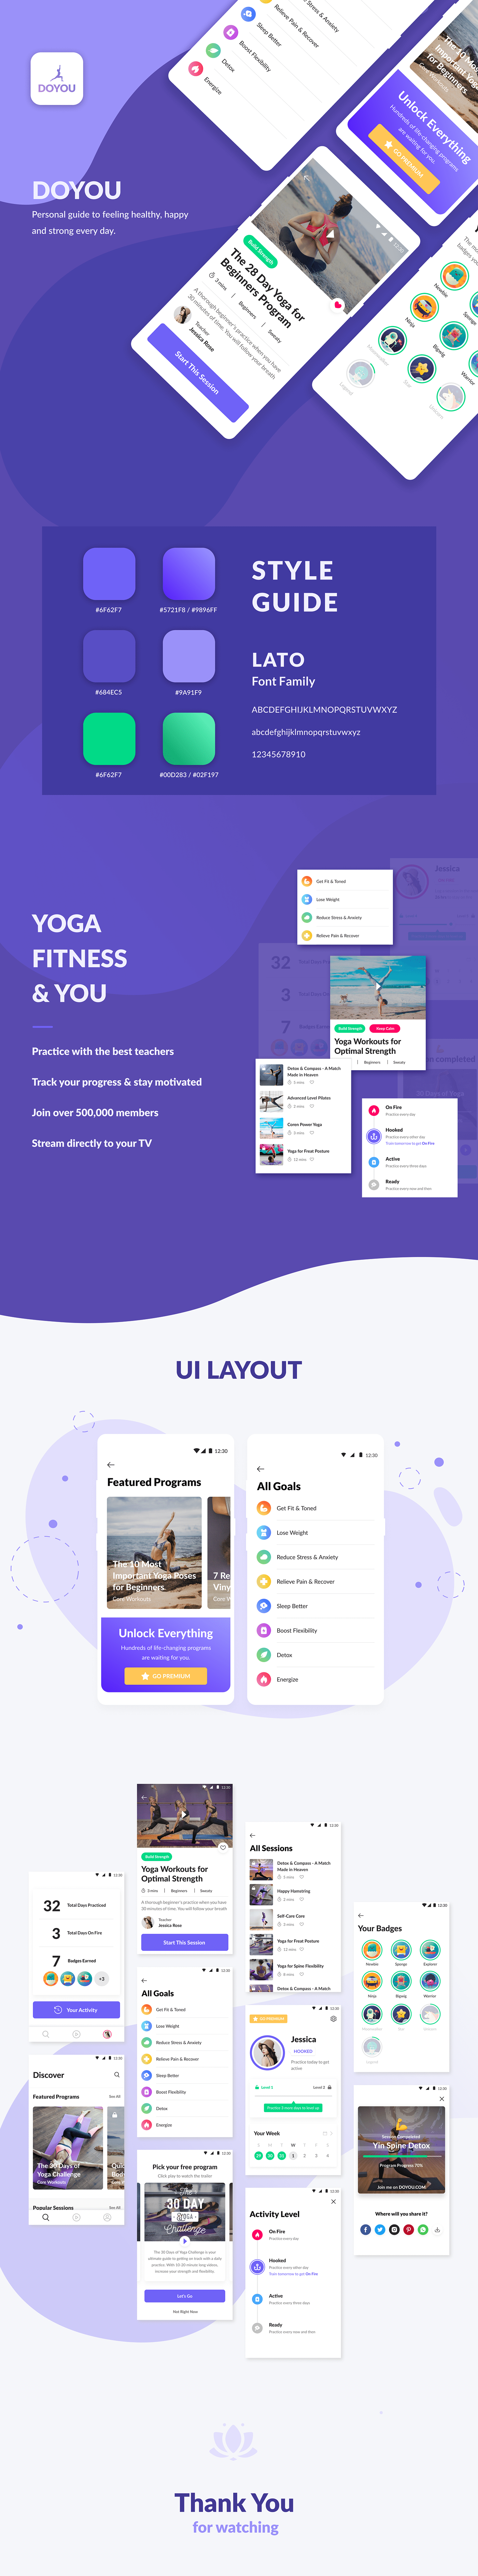 UI,ux,design,mobile,Style,Guide,fonts,Layout,Yoga,fitness